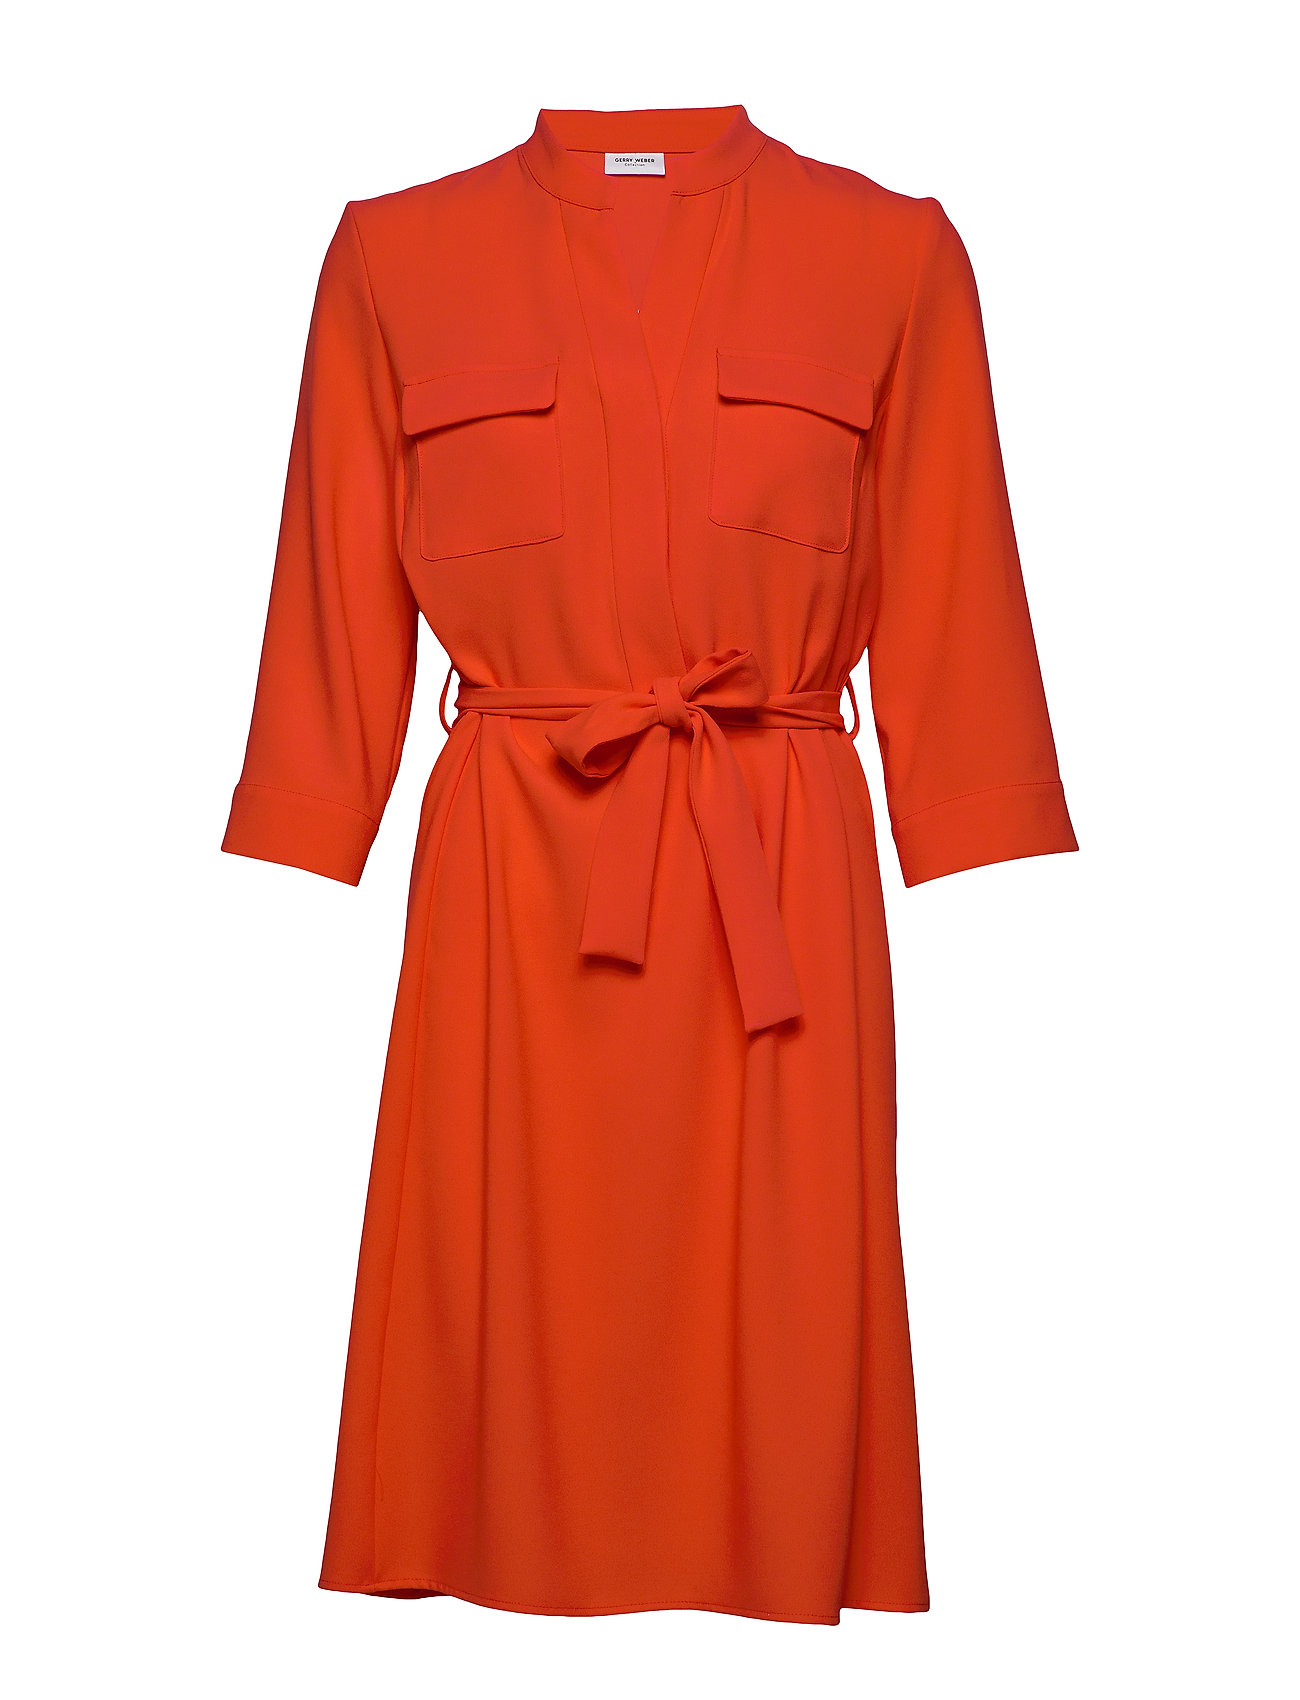 Gerry Weber DRESS WOVEN FABRIC - RED ORANGE